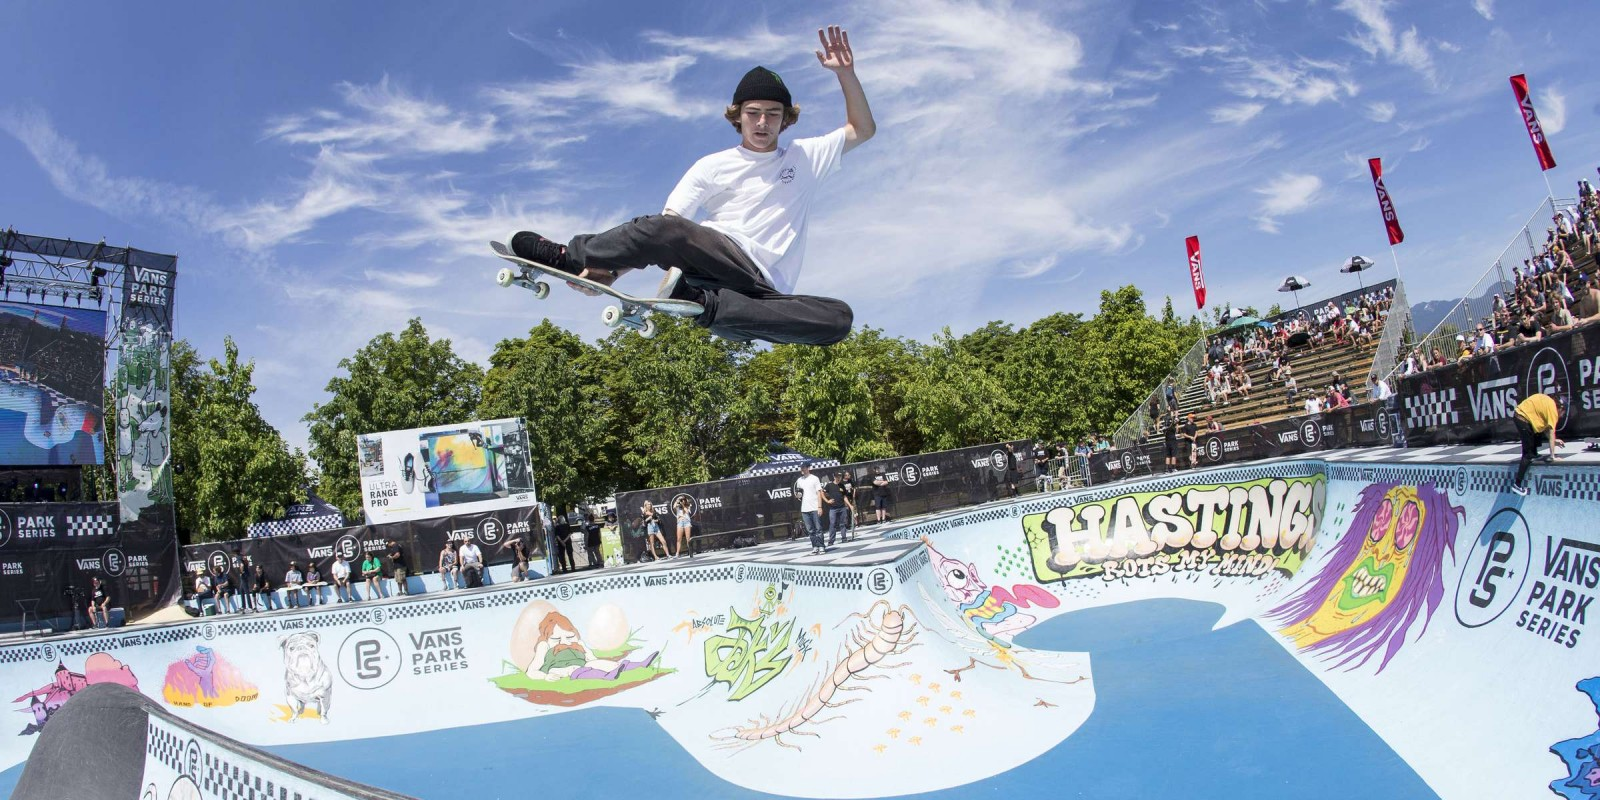 Action shots at Vans Park Series in Vancouver, BC